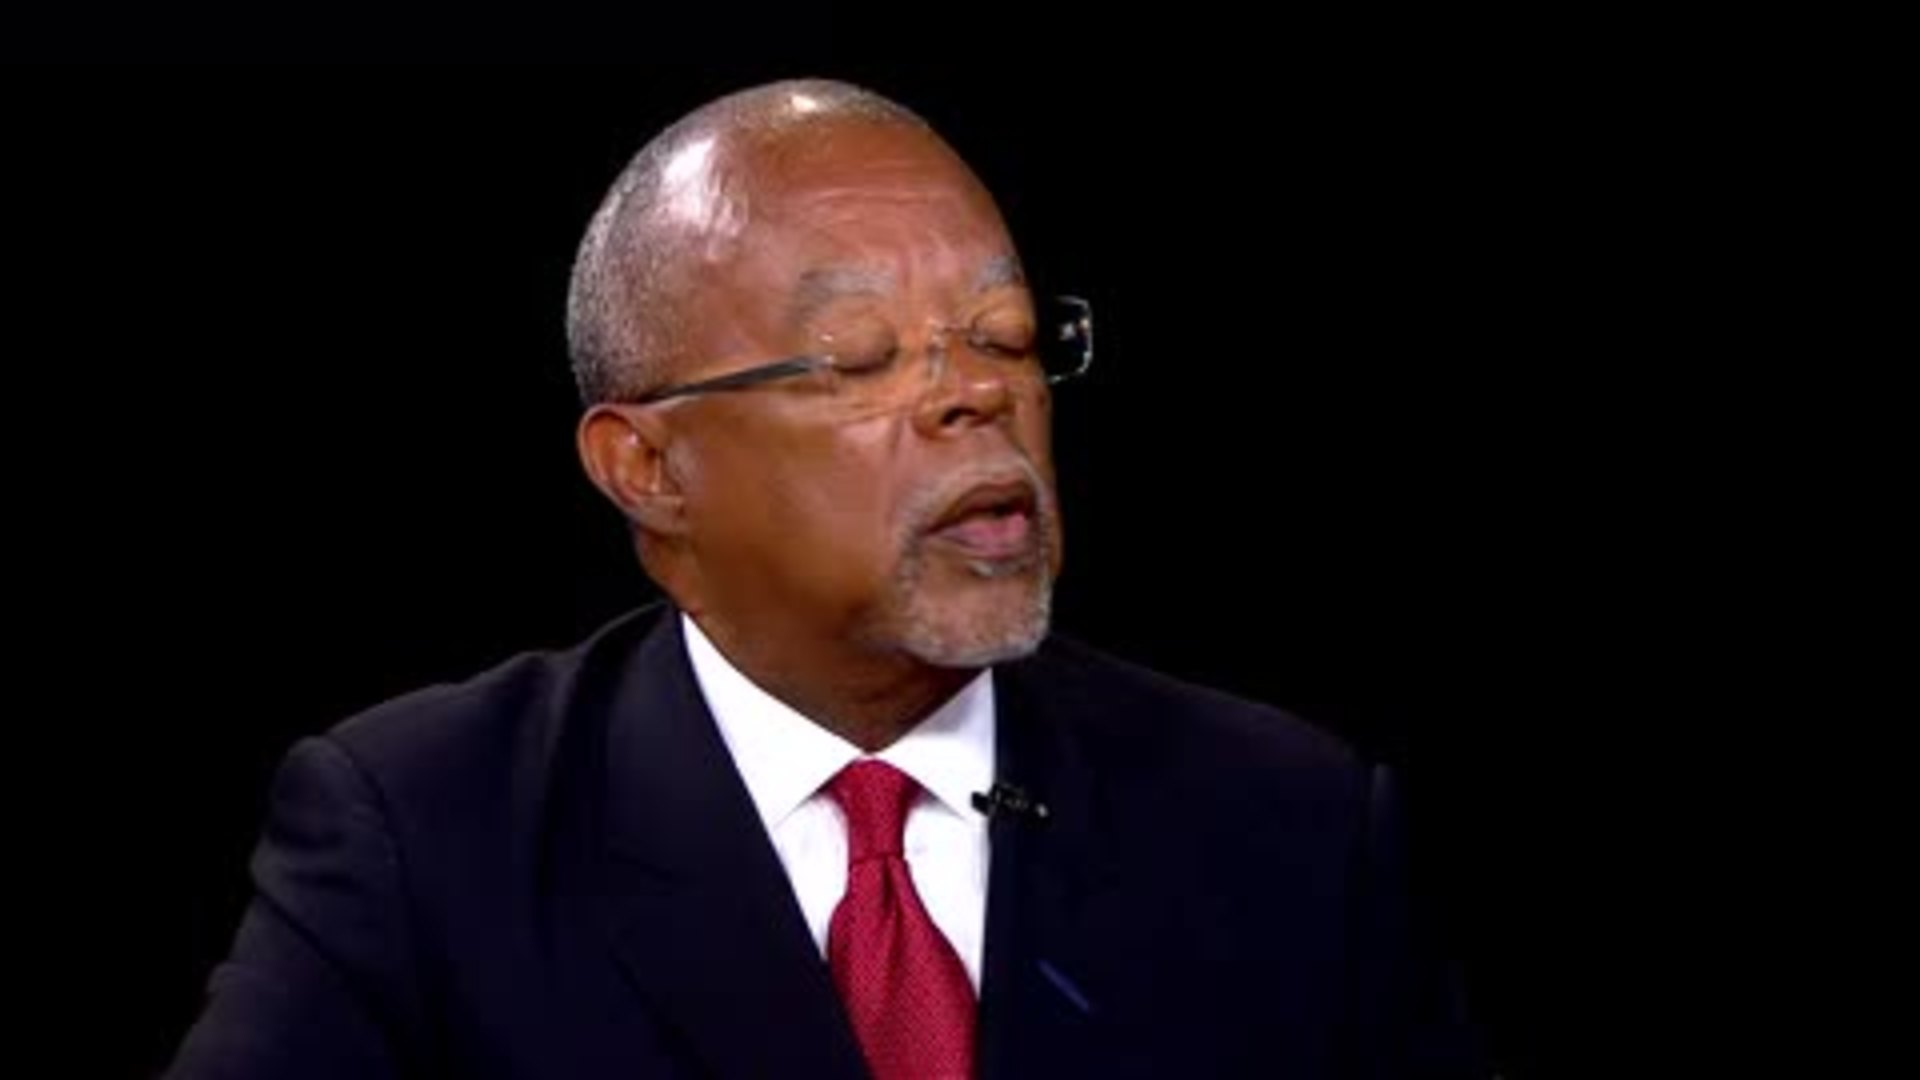 henry louis gates jr delusions of grandeur All henry louis gates jr stories delusions of grandeur array young blacks must be taught that sports are not the only avenues of opportunity the.